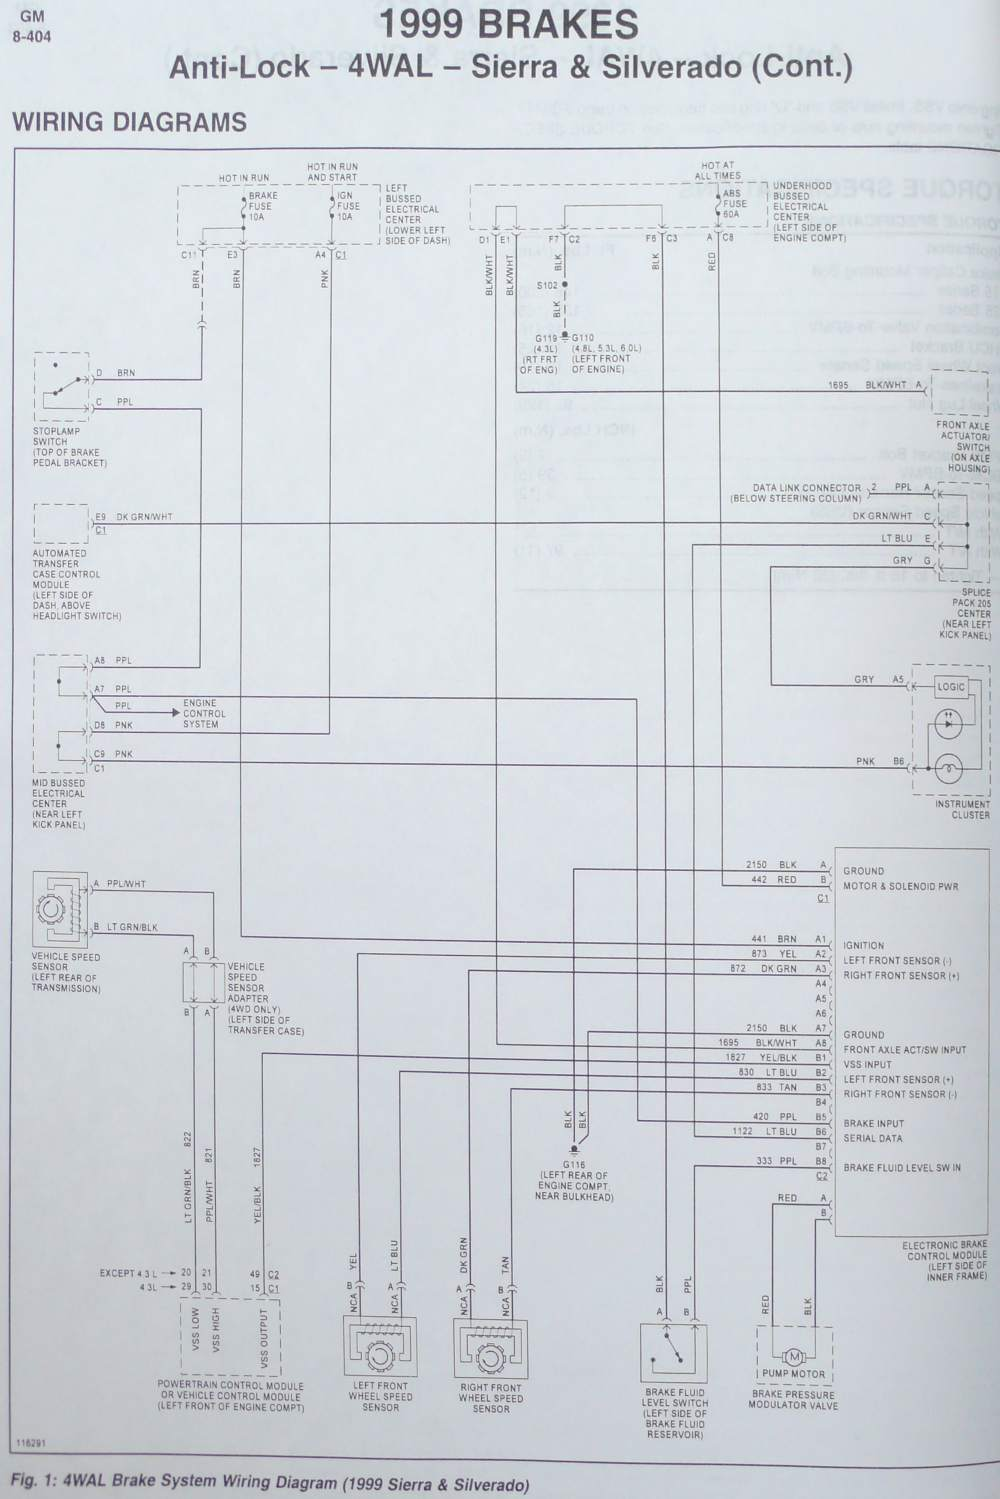 international abs wiring diagram need wiring diagram for kelsey hayes 325 to troubleshoot an  wiring diagram for kelsey hayes 325